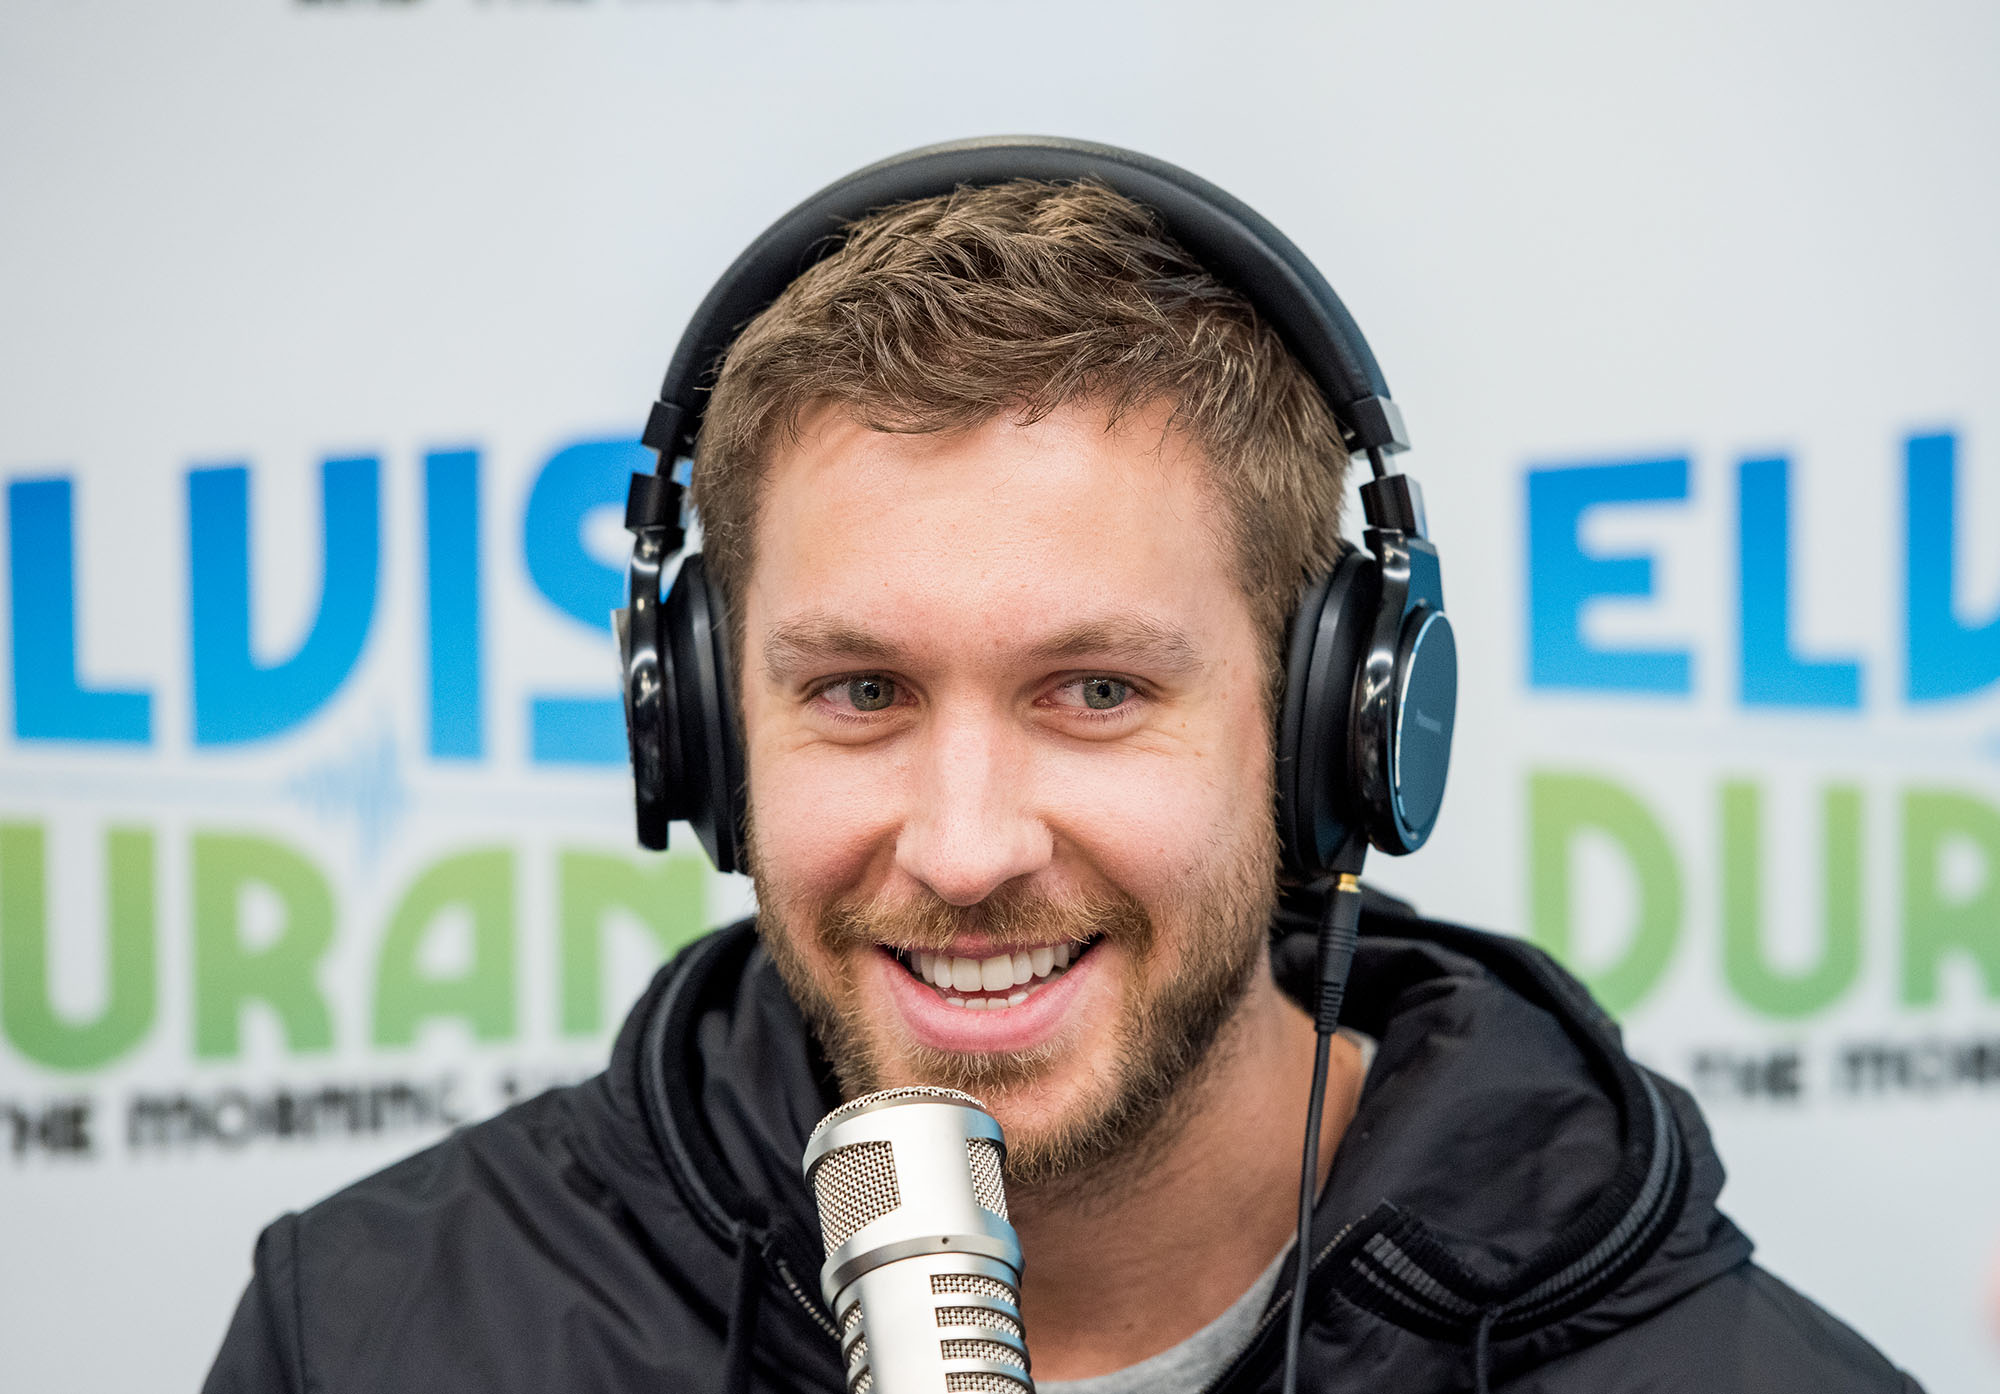 Calvin Harris Visits  The Elvis Duran Z100 Morning Show  at Z100 Studio on September 14, 2016 in New York City.  (Photo by Roy Rochlin/Getty Images)